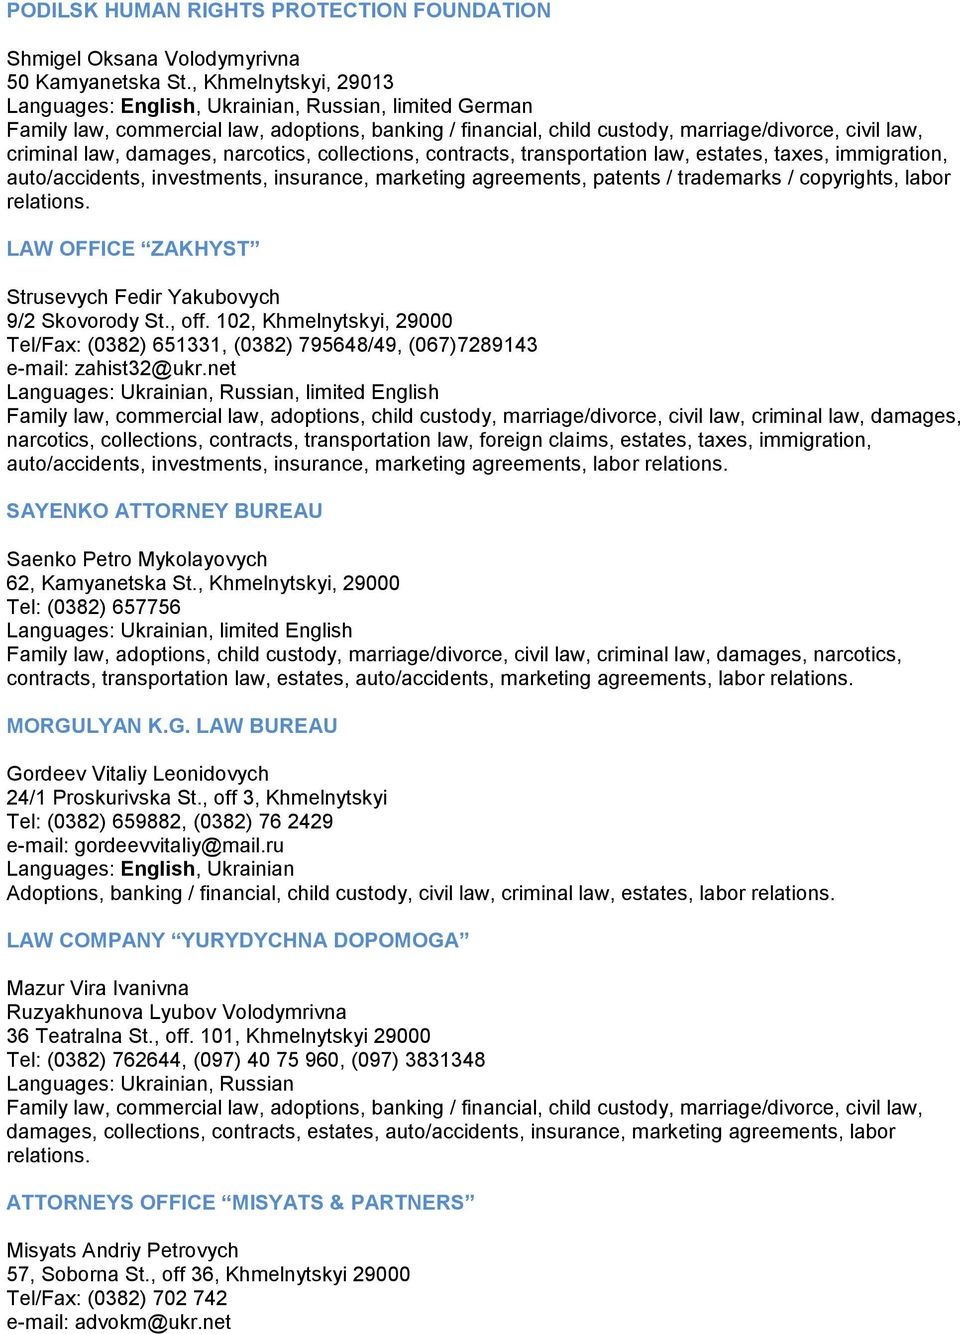 Lawyer services in Lutsk and region: a selection of sites